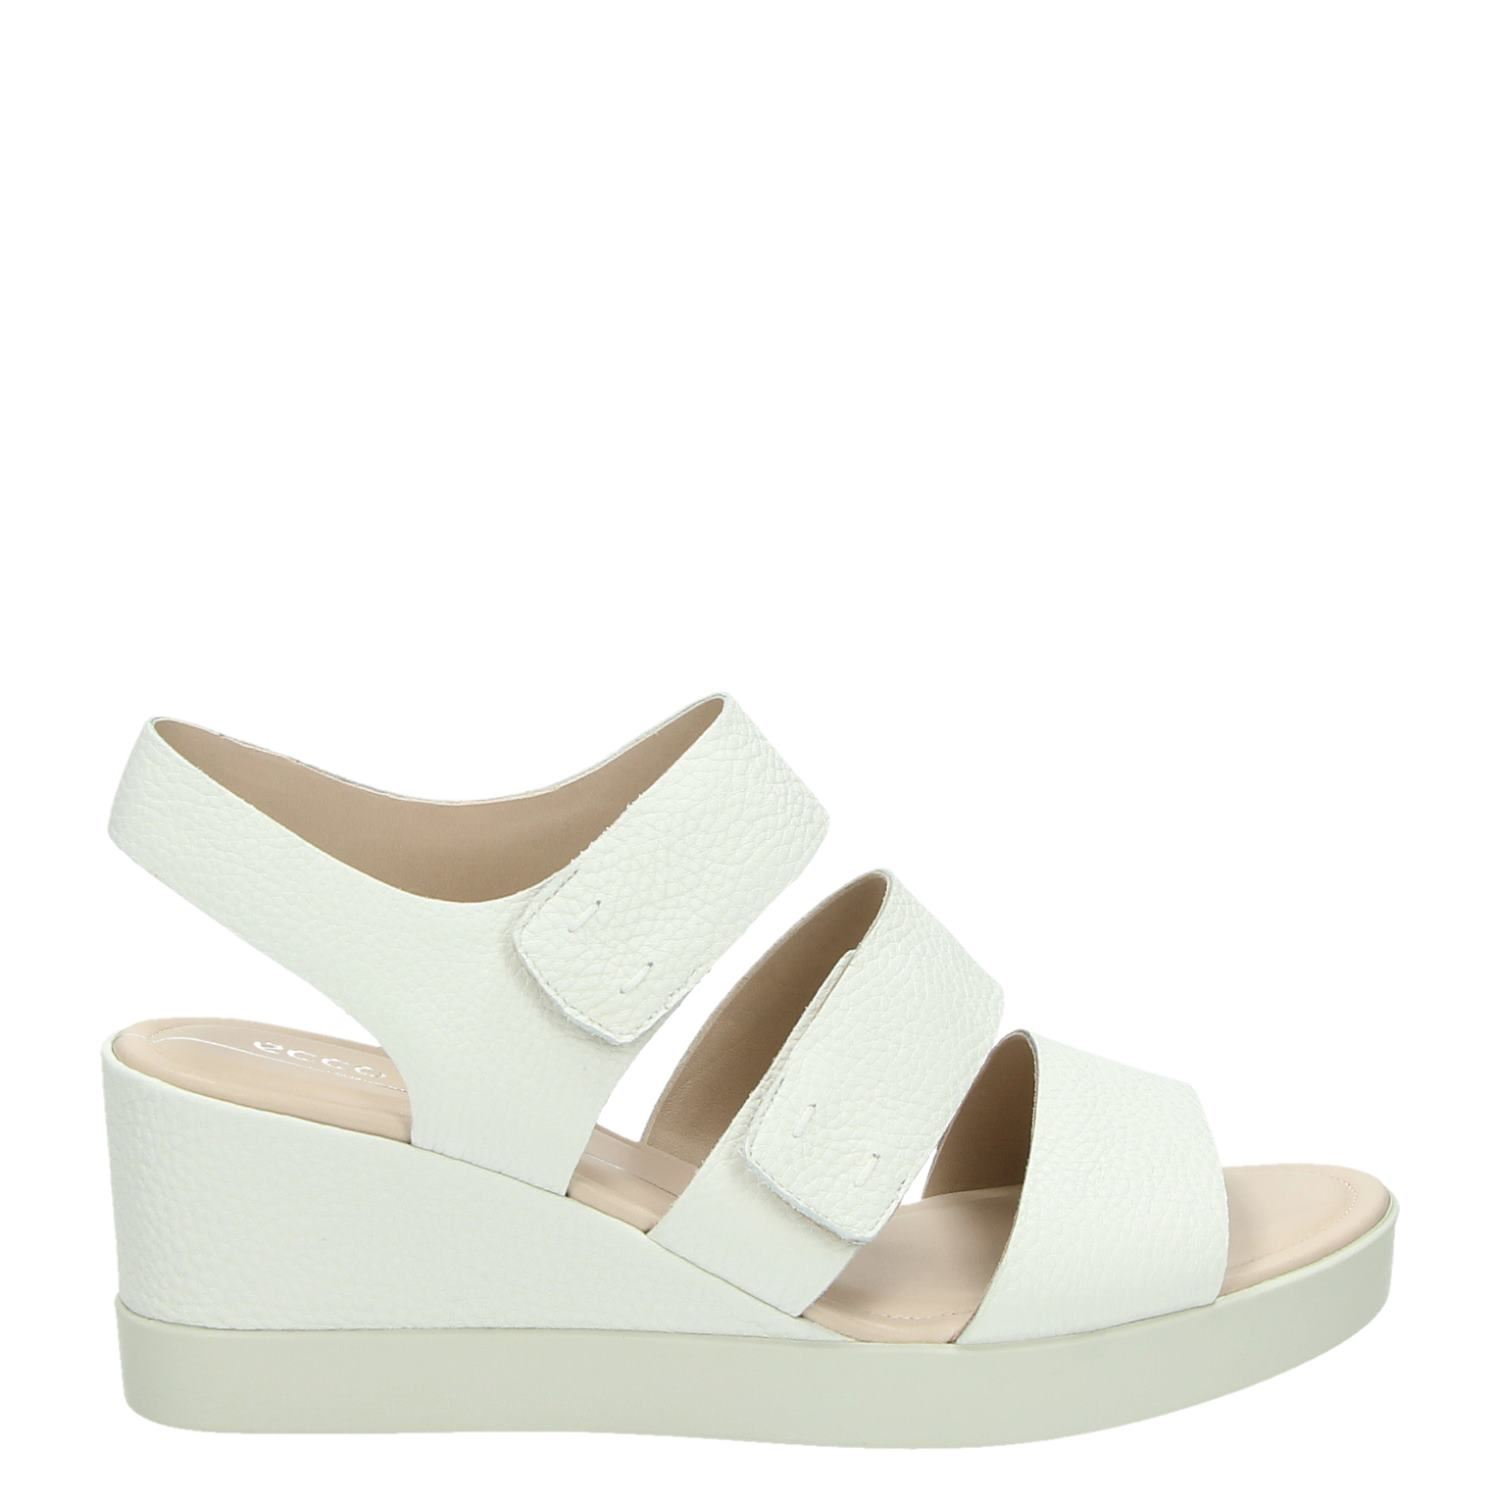 Coins Wedge Chaussures De Plate-forme F8y1EL